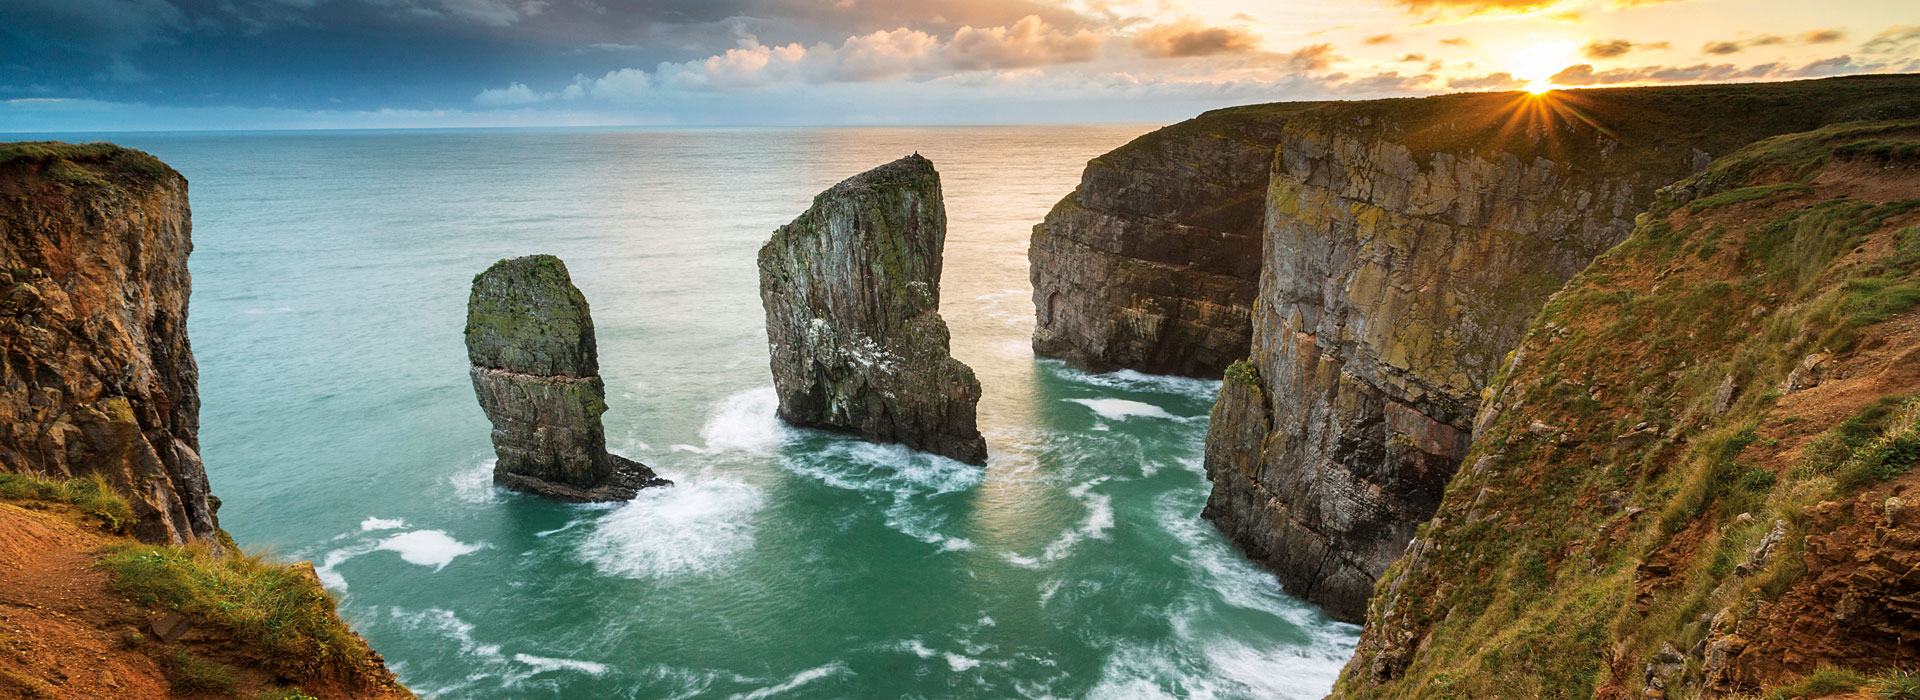 Elegug Stacks on the Wales Coast Path in Pembrokeshire